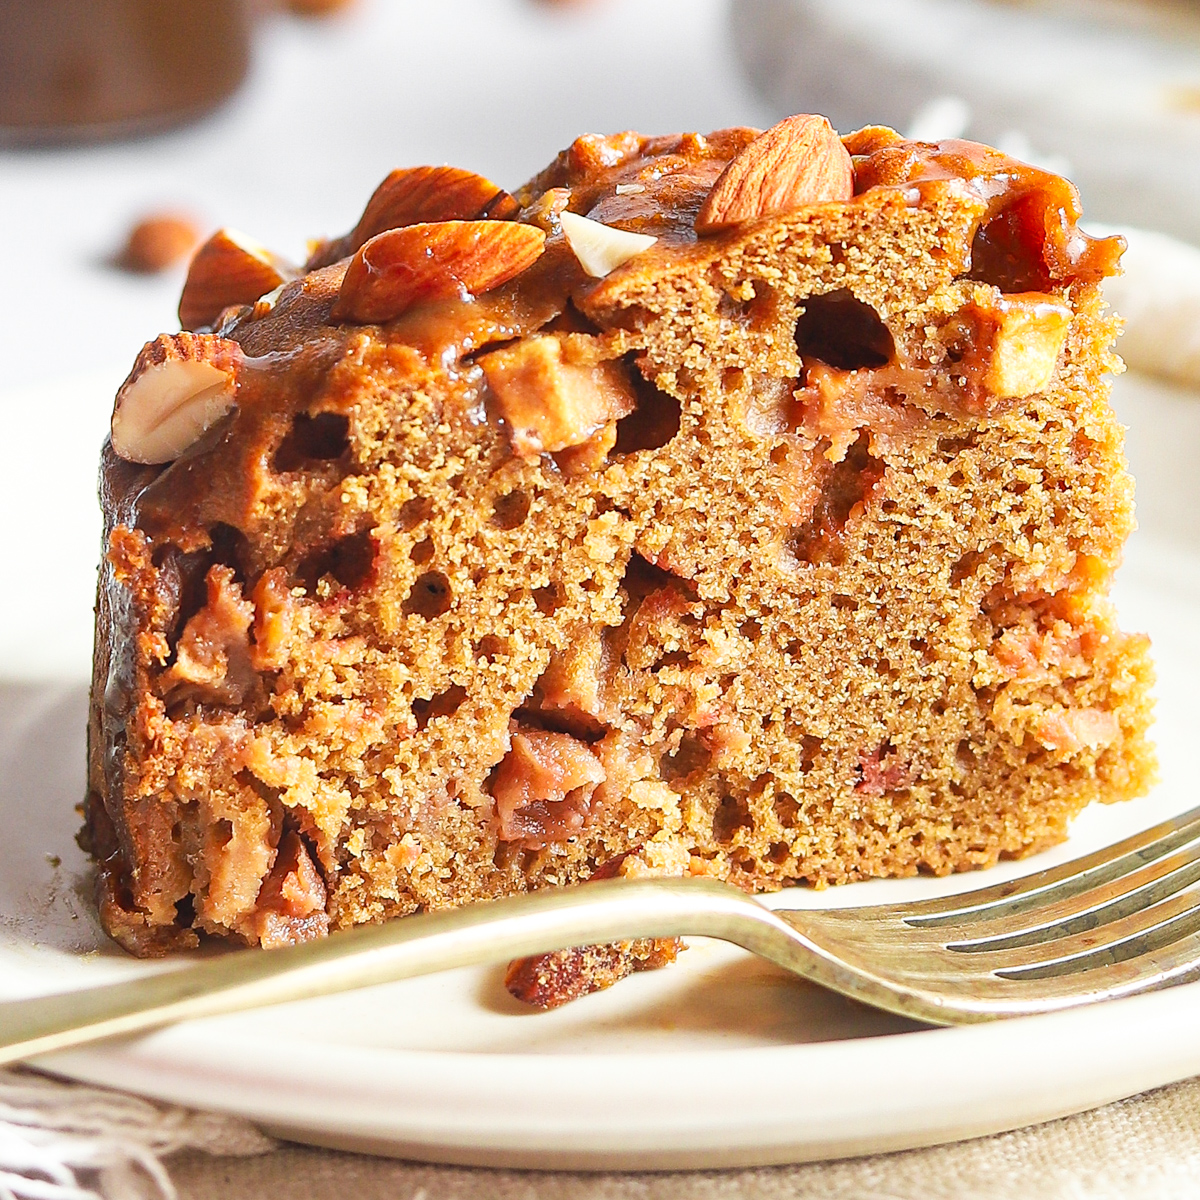 Slice of toffee apple cake with apple pieces - close up